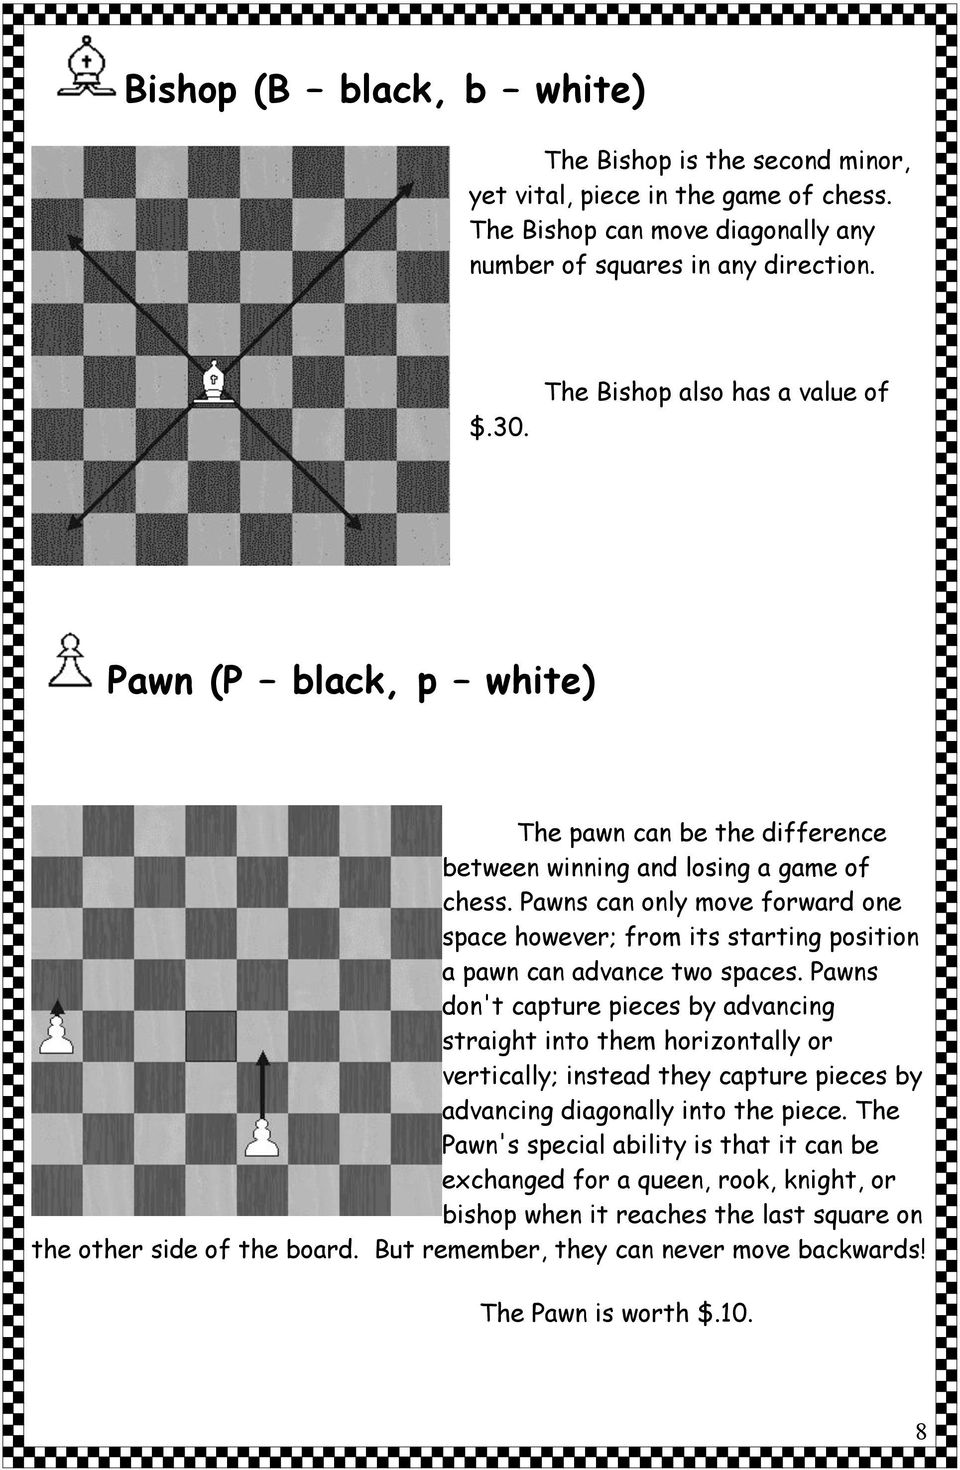 Pawns can only move forward one space however; from its starting position a pawn can advance two spaces.